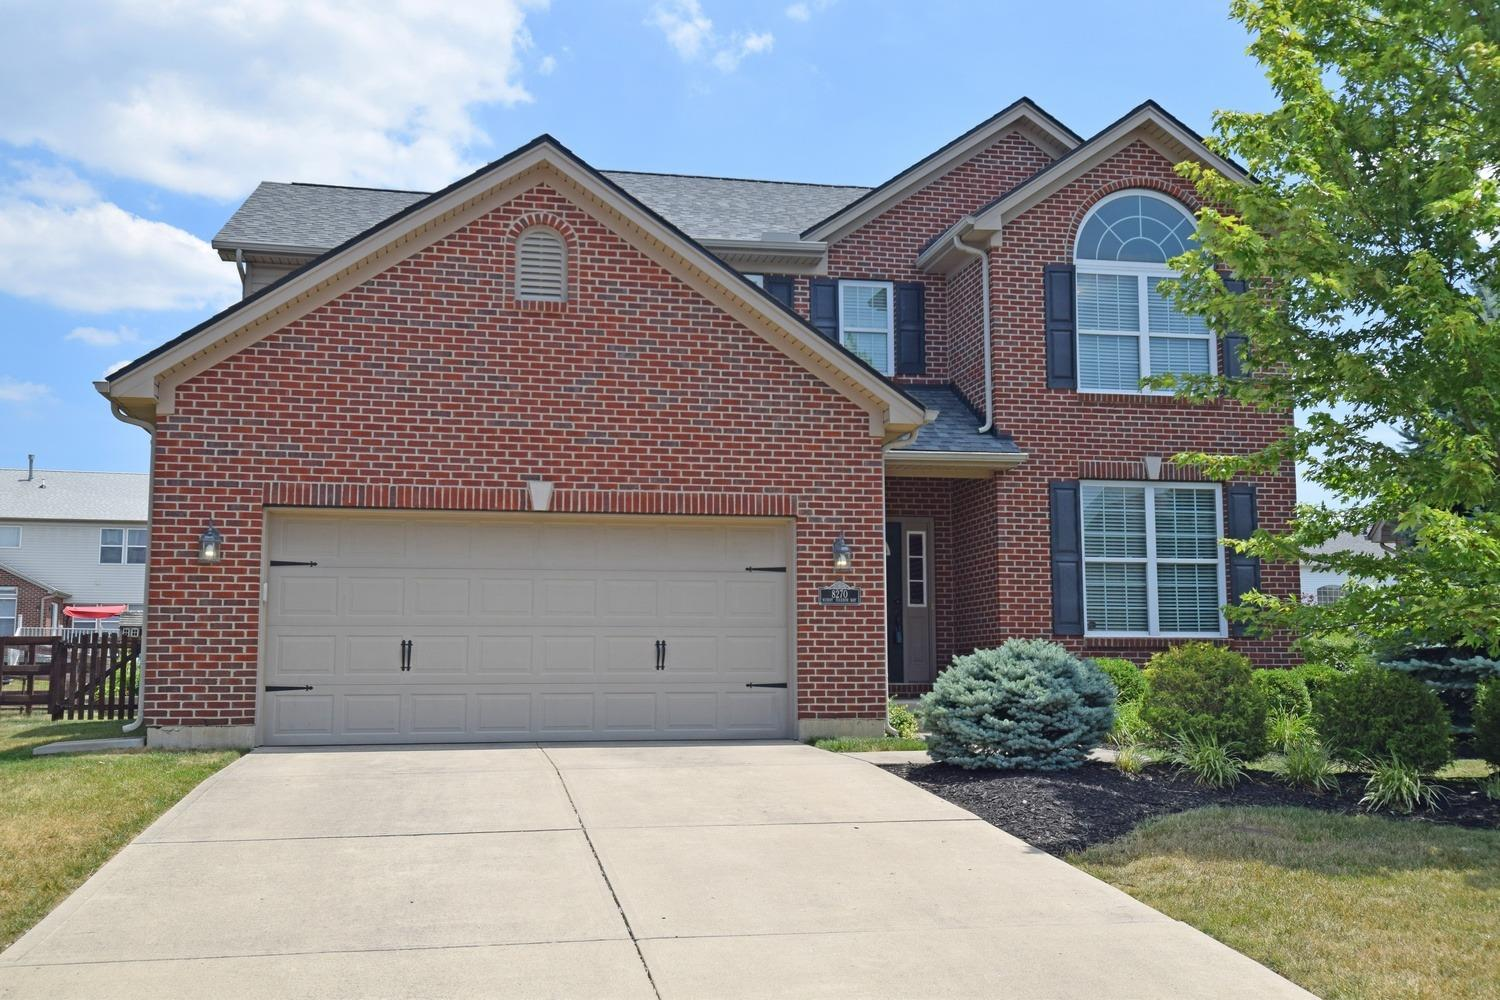 Property for sale at 8270 Windy Harbor Way, West Chester,  Ohio 45069